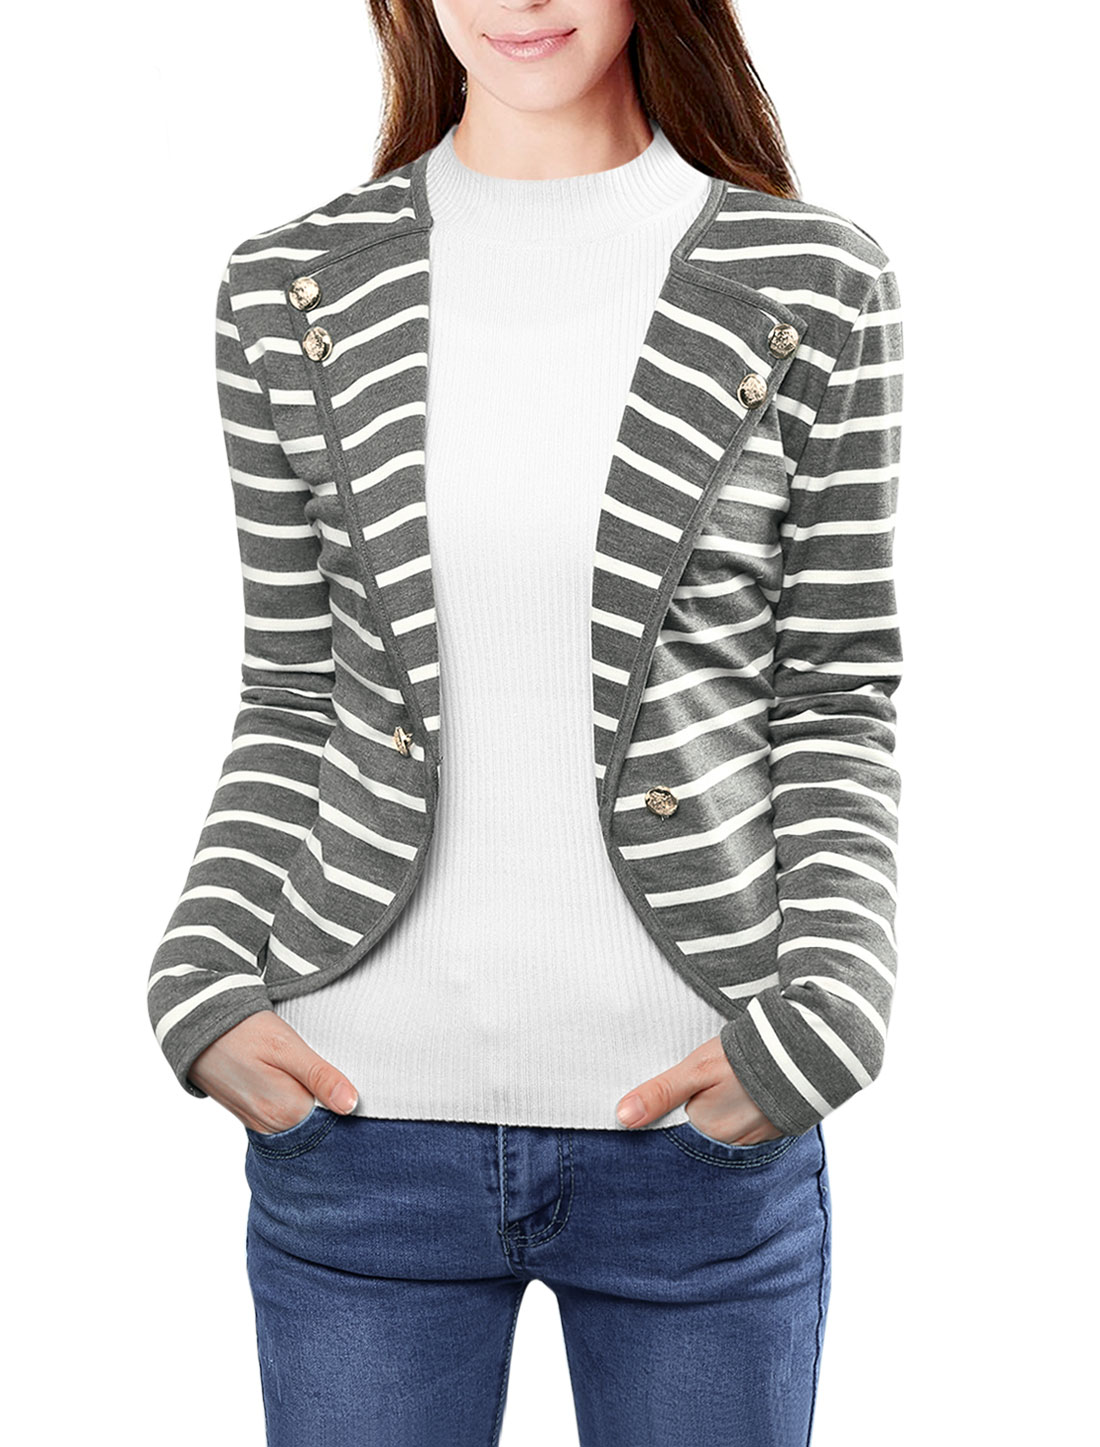 Ladies Notched Lapel Button Decor Striped Blazer Gray White S